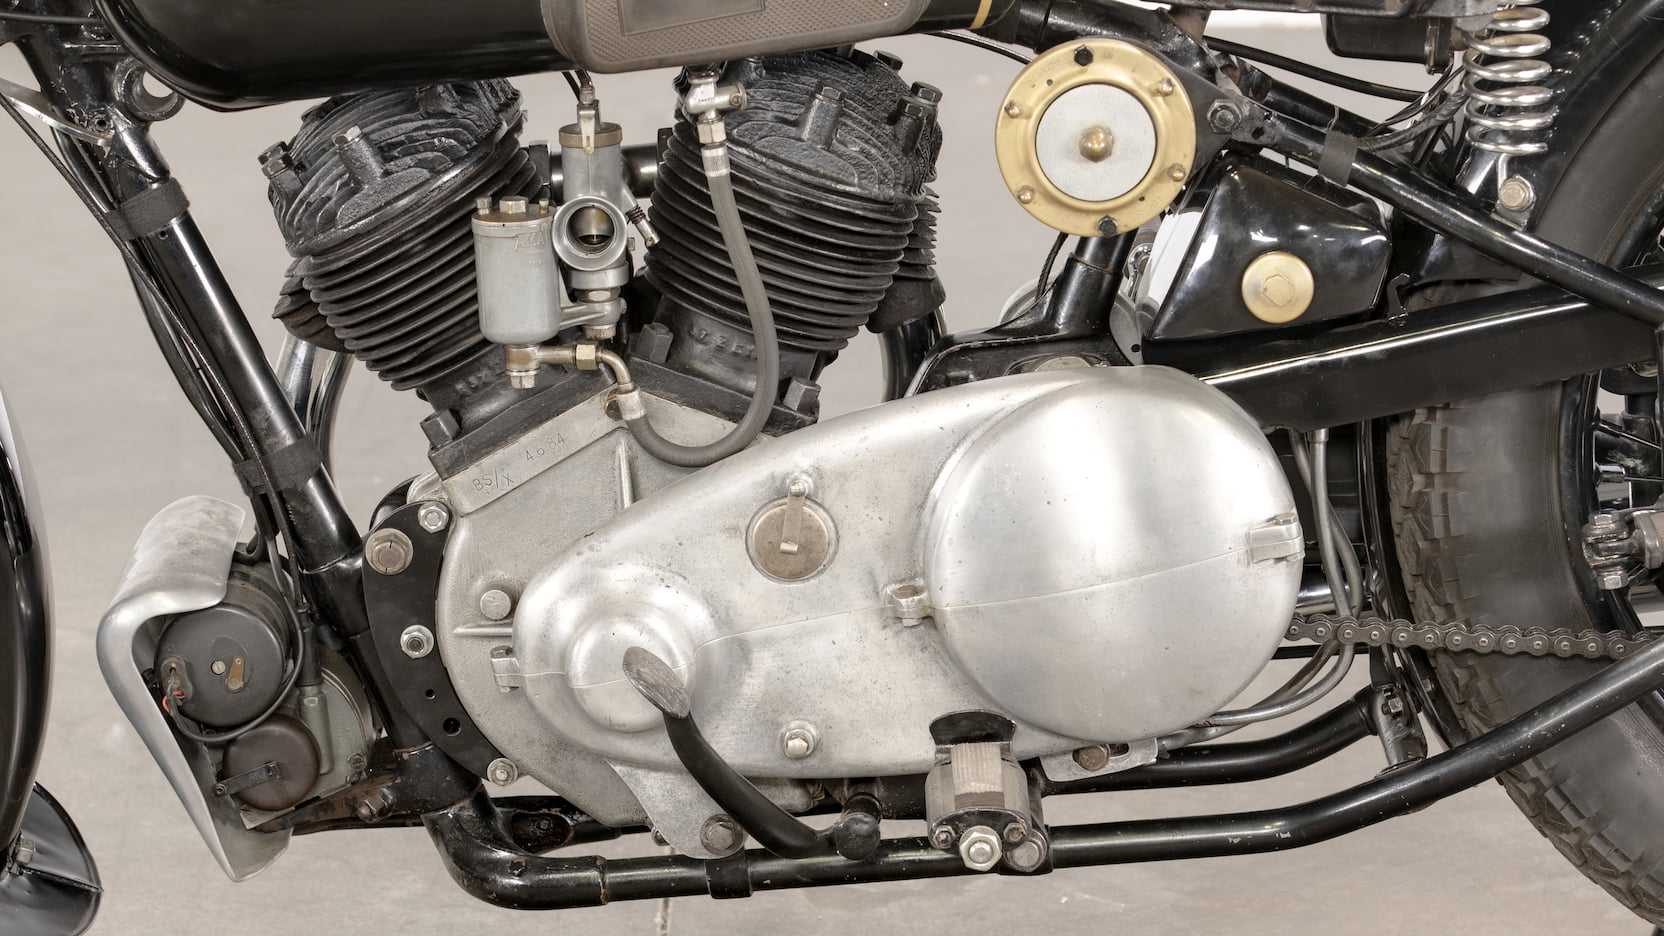 Brough SS80 Matchless engine